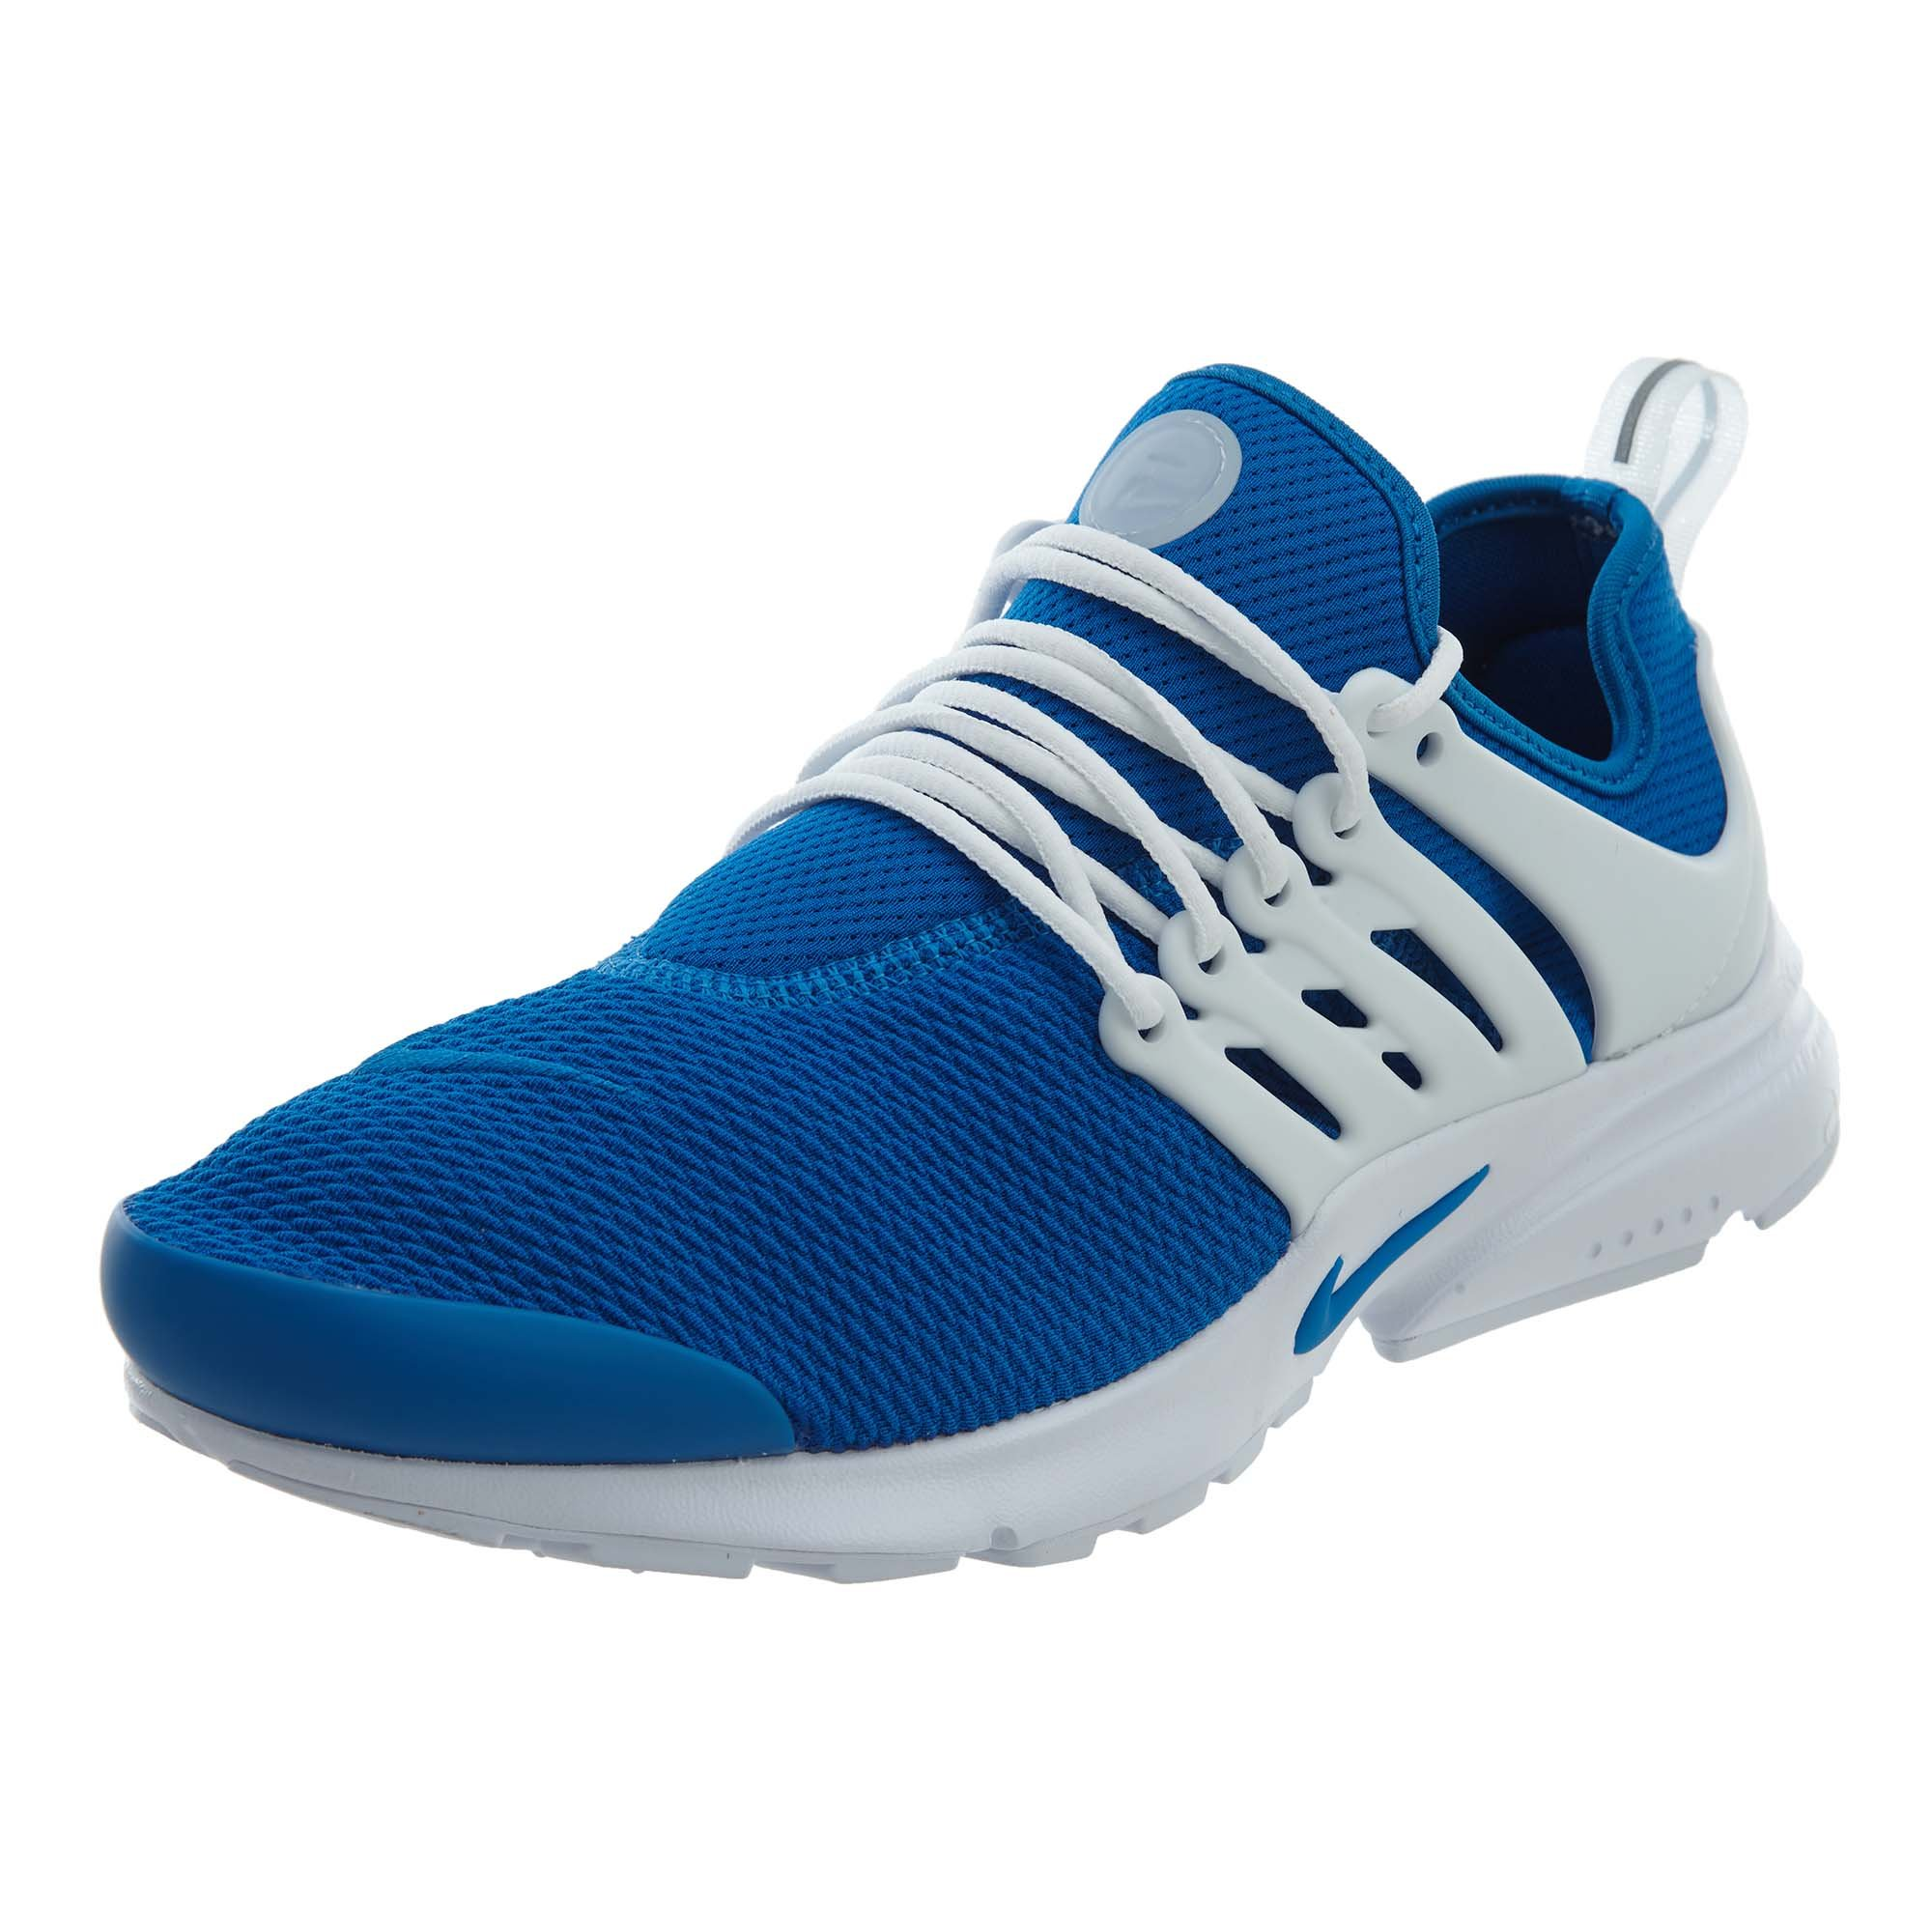 promo code 95136 53247 NIKE Women's Air Presto Blue Nebula/Blue Nebula White Running Shoe 7 Women  US